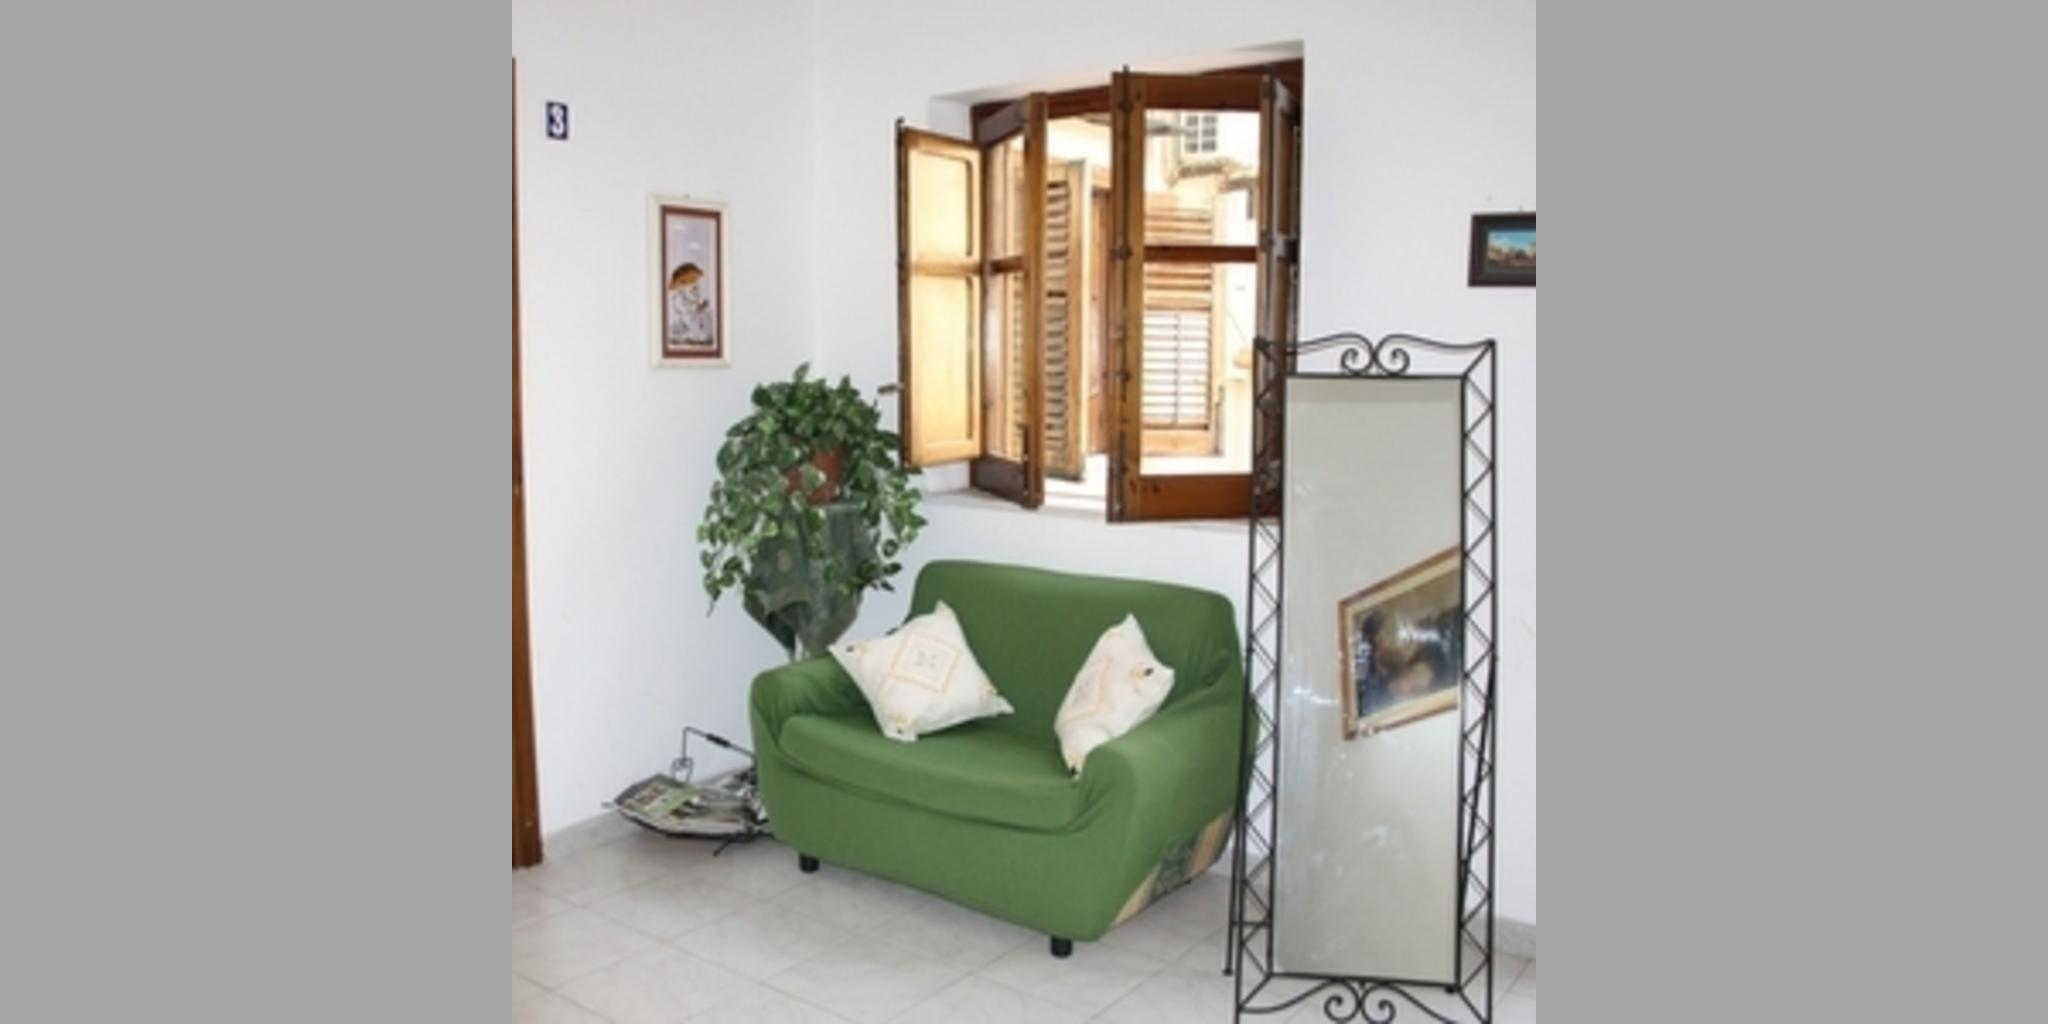 Bed & Breakfast Palermo - Sicilia_Palermo